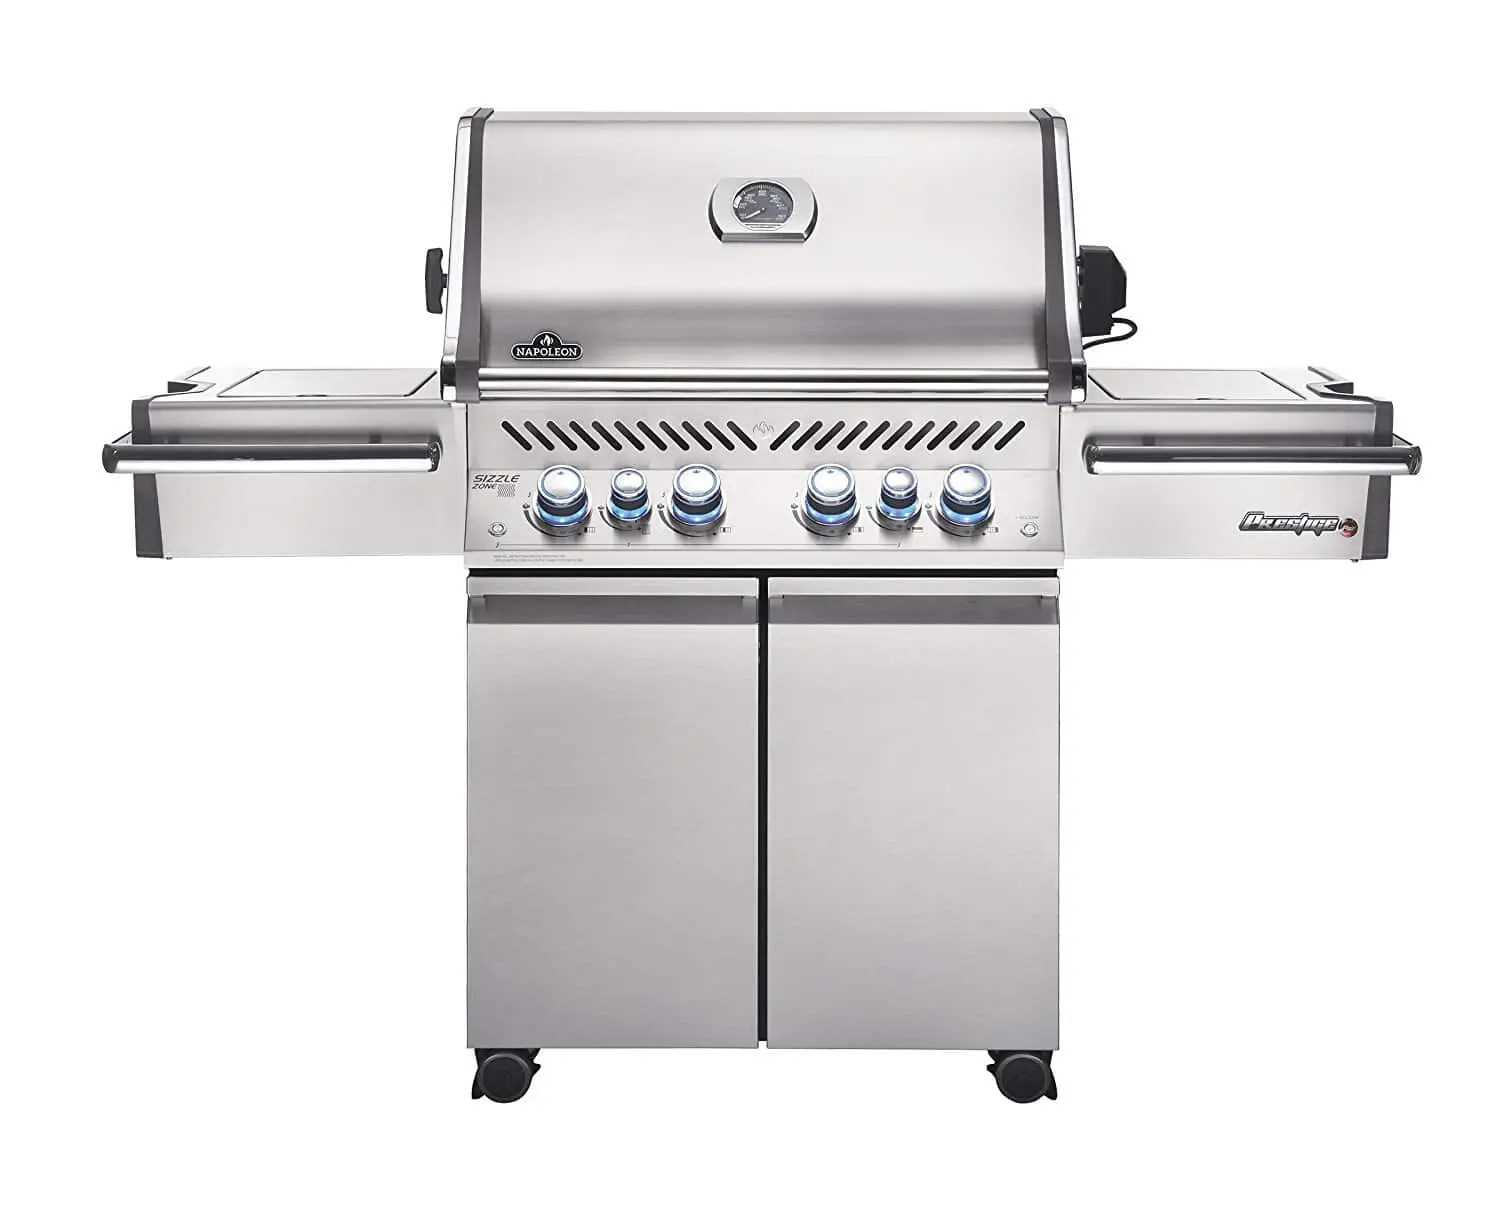 Napoleon Grill Sizzle Zone Napoleon Grills Prestige Pro 500 Propane Gas Grill Stainless Steel